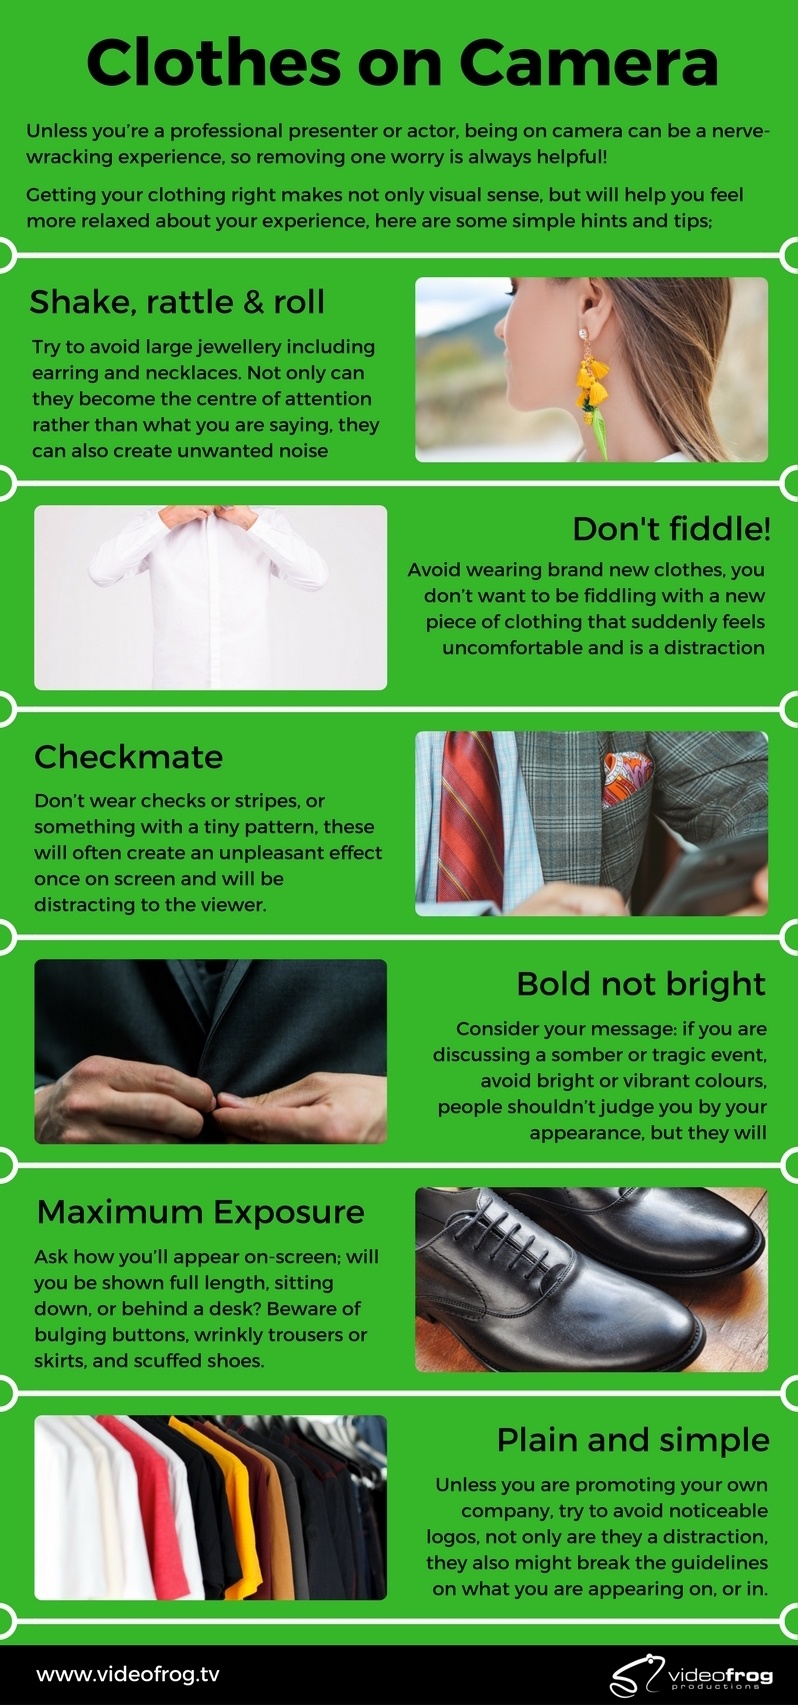 hints and tips for dressing and looking great on camera